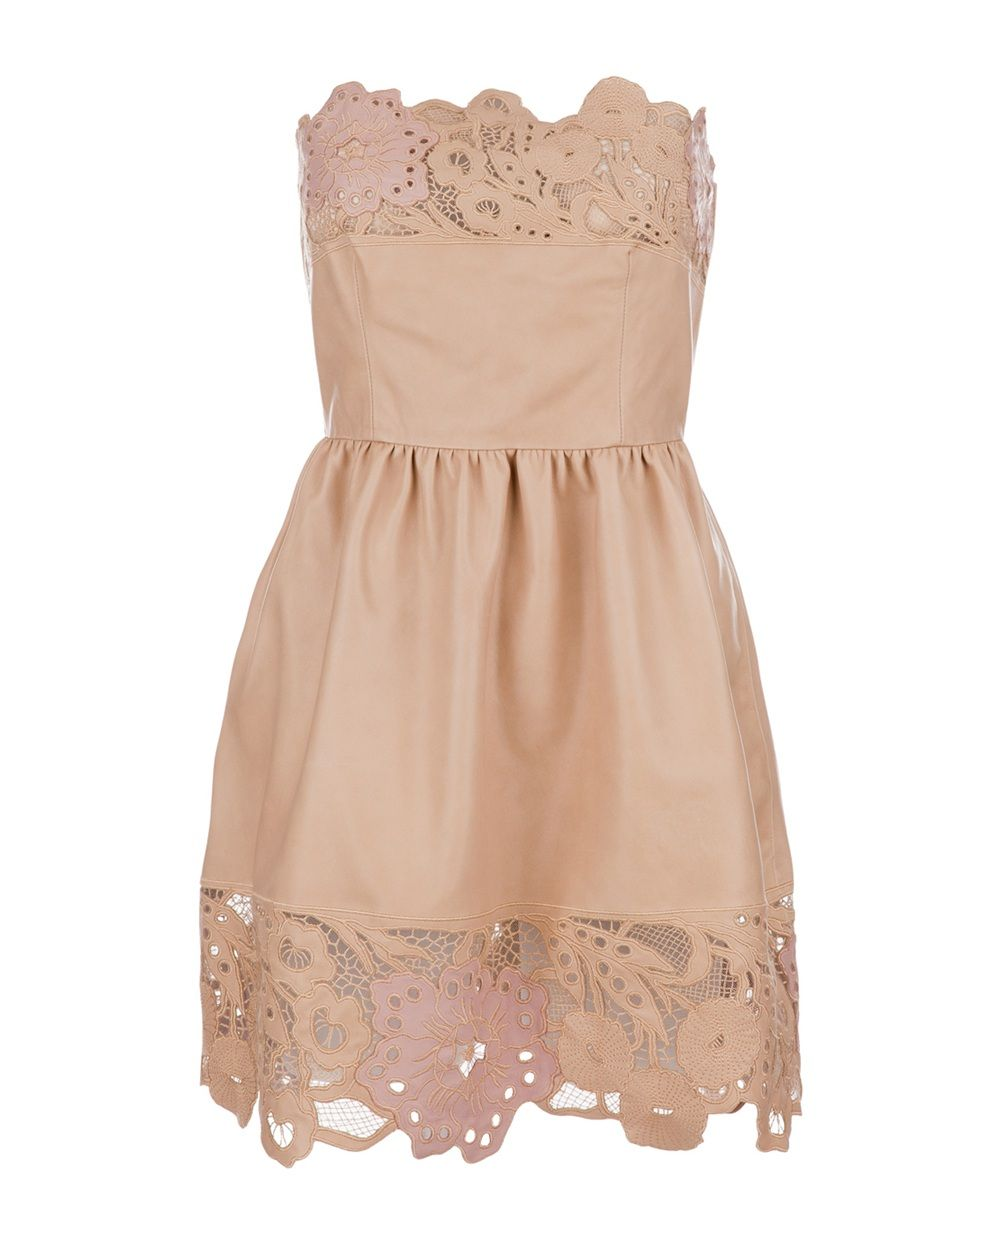 Kaffee Abendkleider Valentino Butter Soft Nude Leather Dress With Laser Cut Hem And